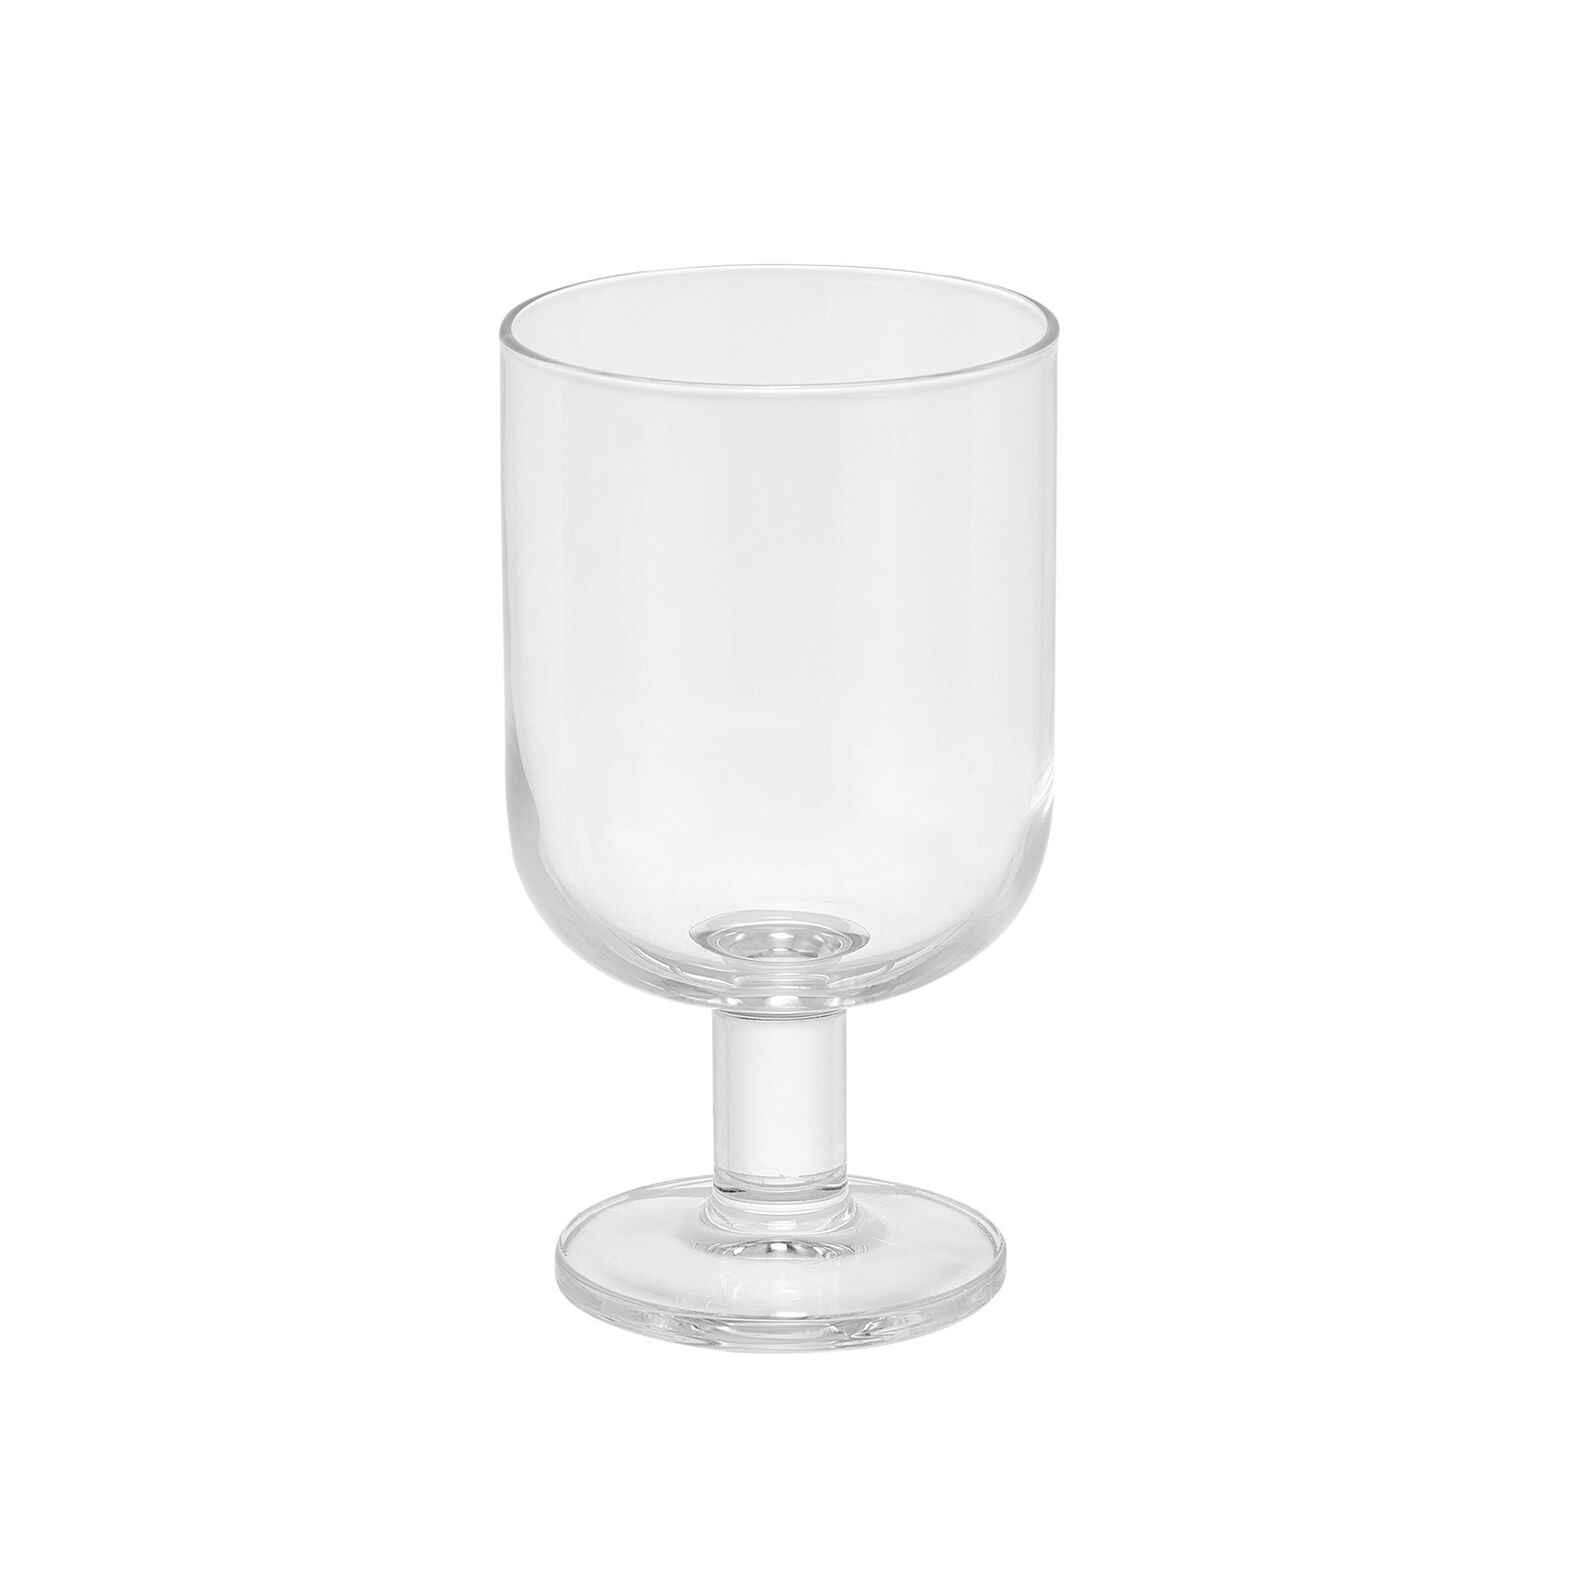 Set of 6 transparent glass water goblets